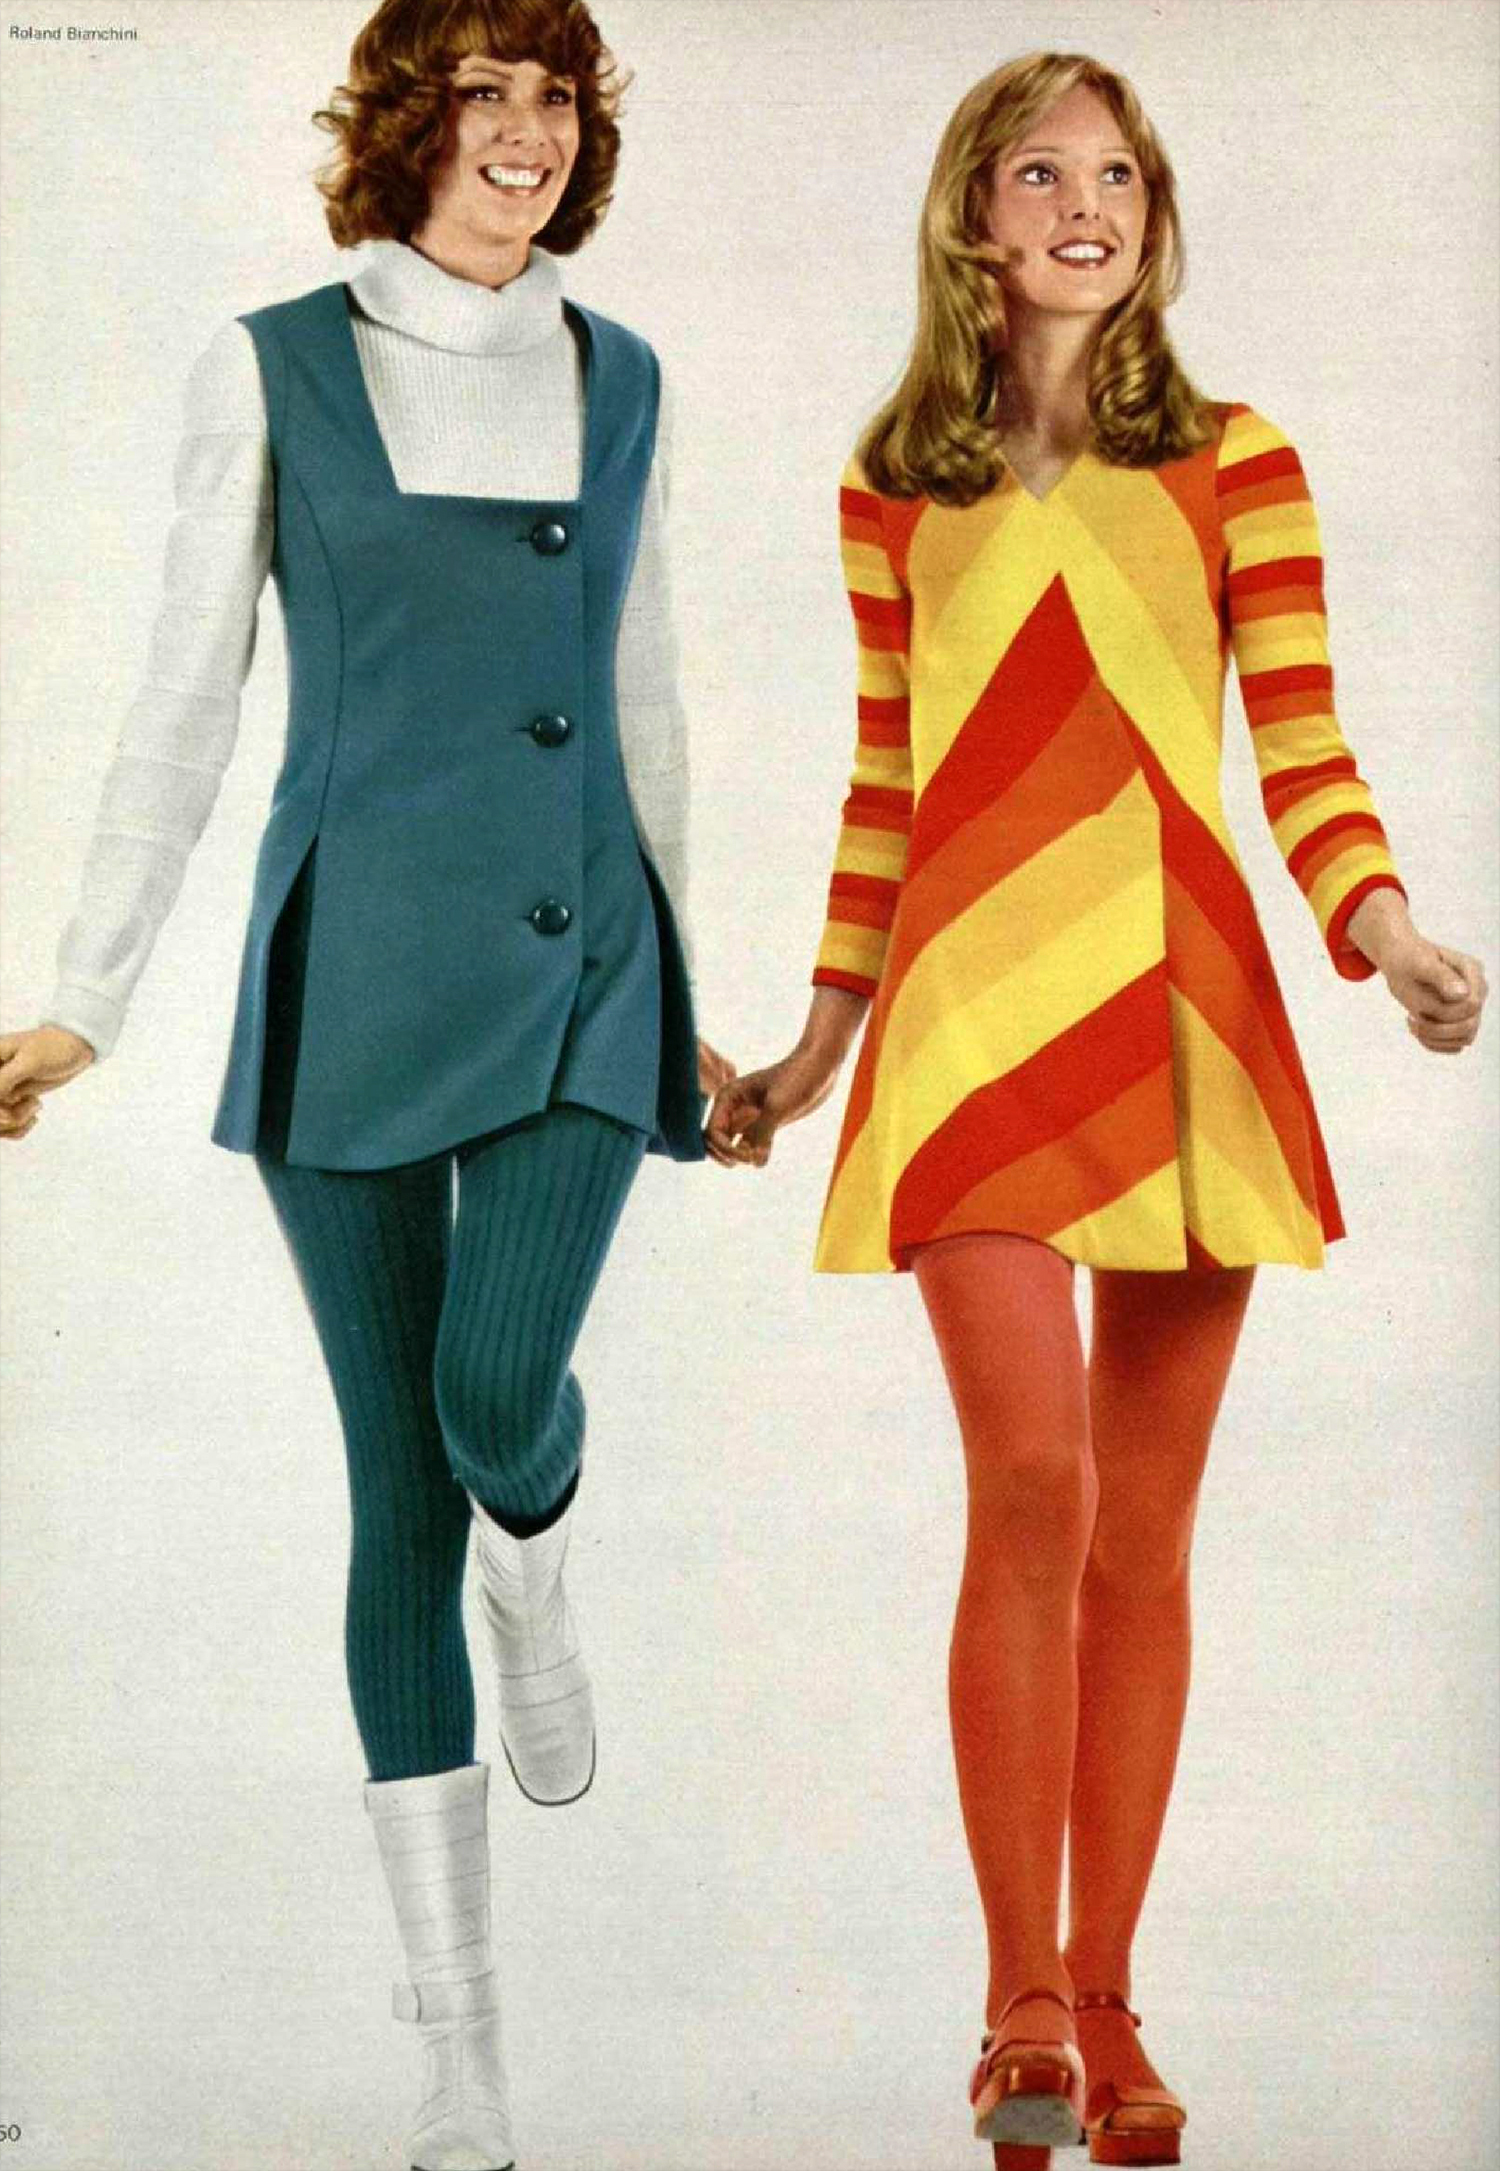 French Fashion '71: Stunning Women's Styles From 1971